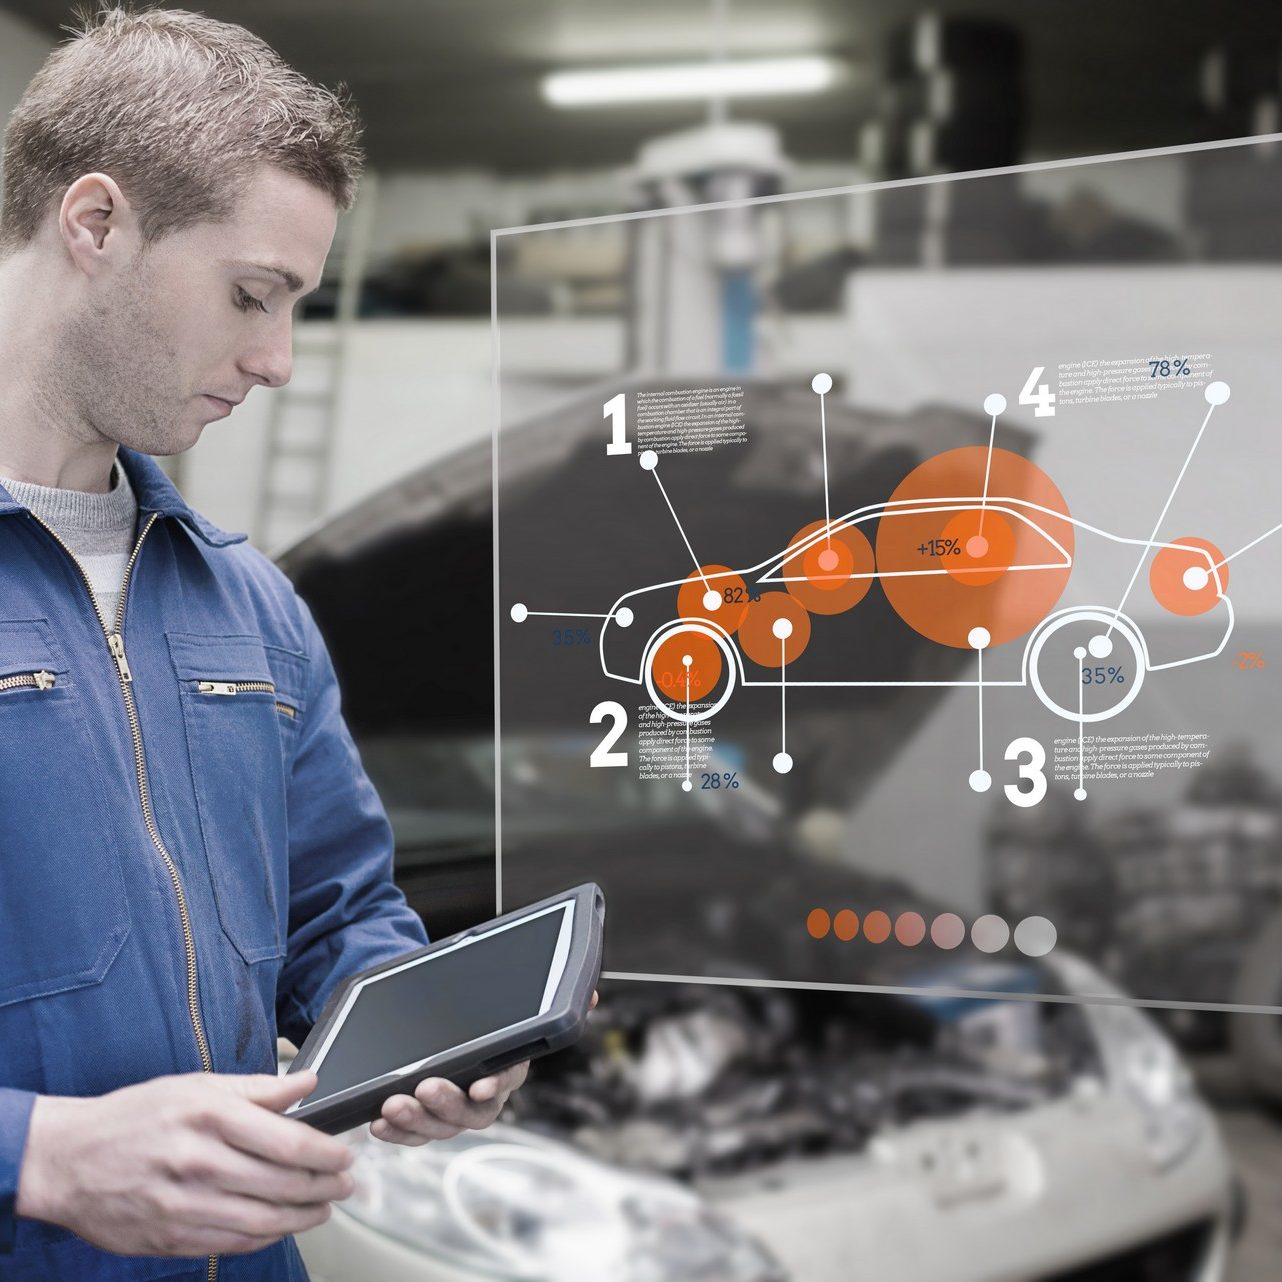 Mechanic using tablet and futuristic interface with diagram